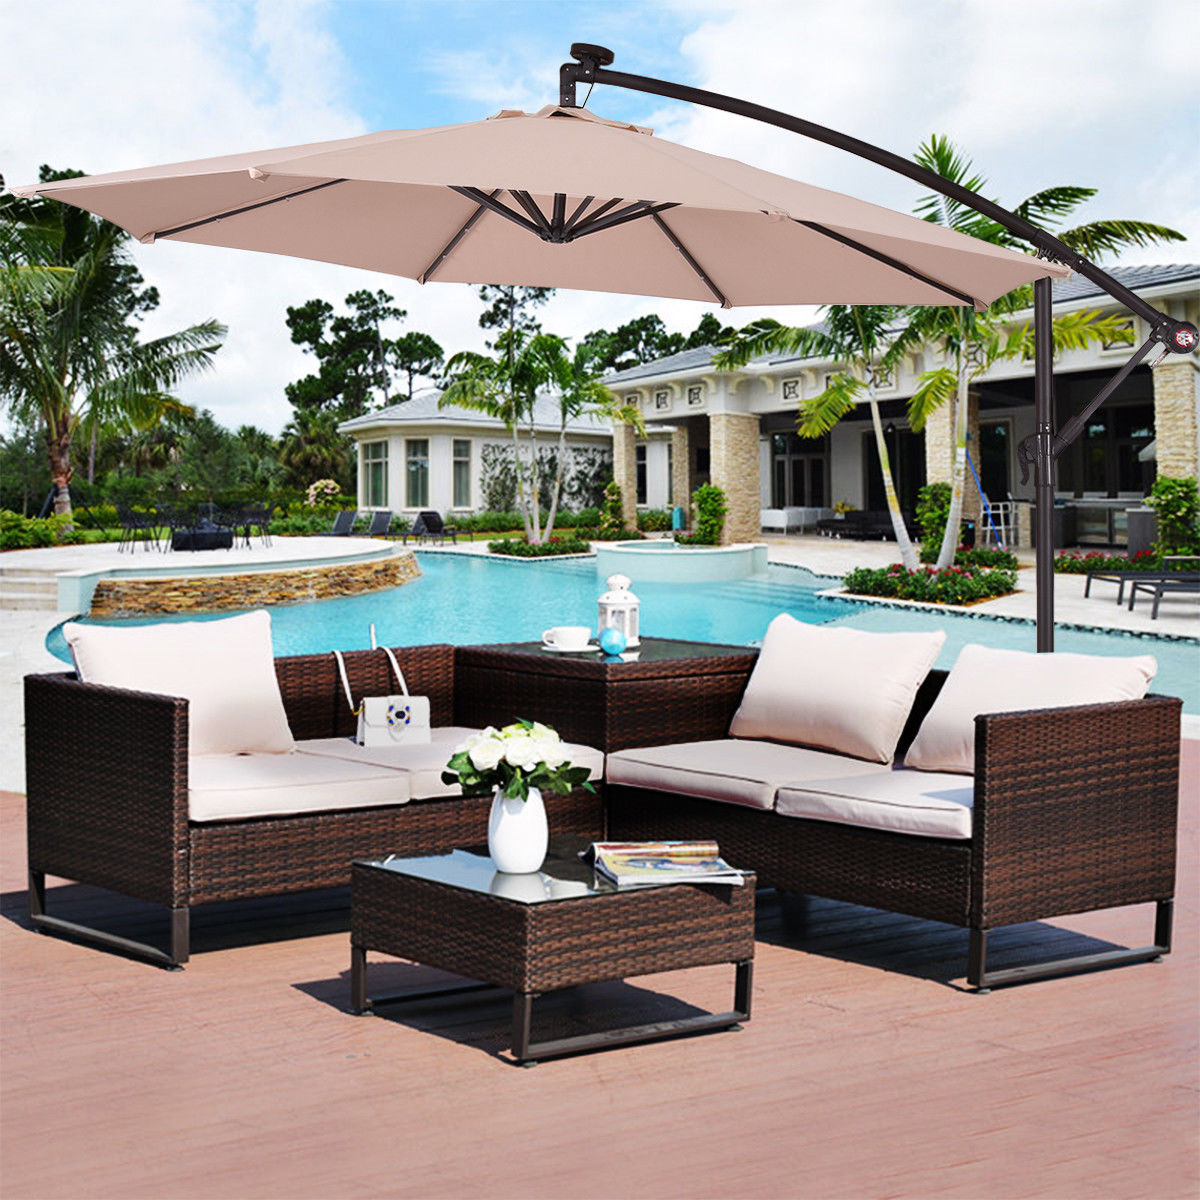 Costway 10' Hanging Solar LED Umbrella Patio Sun Shade Offset Market W Base Beige by Costway